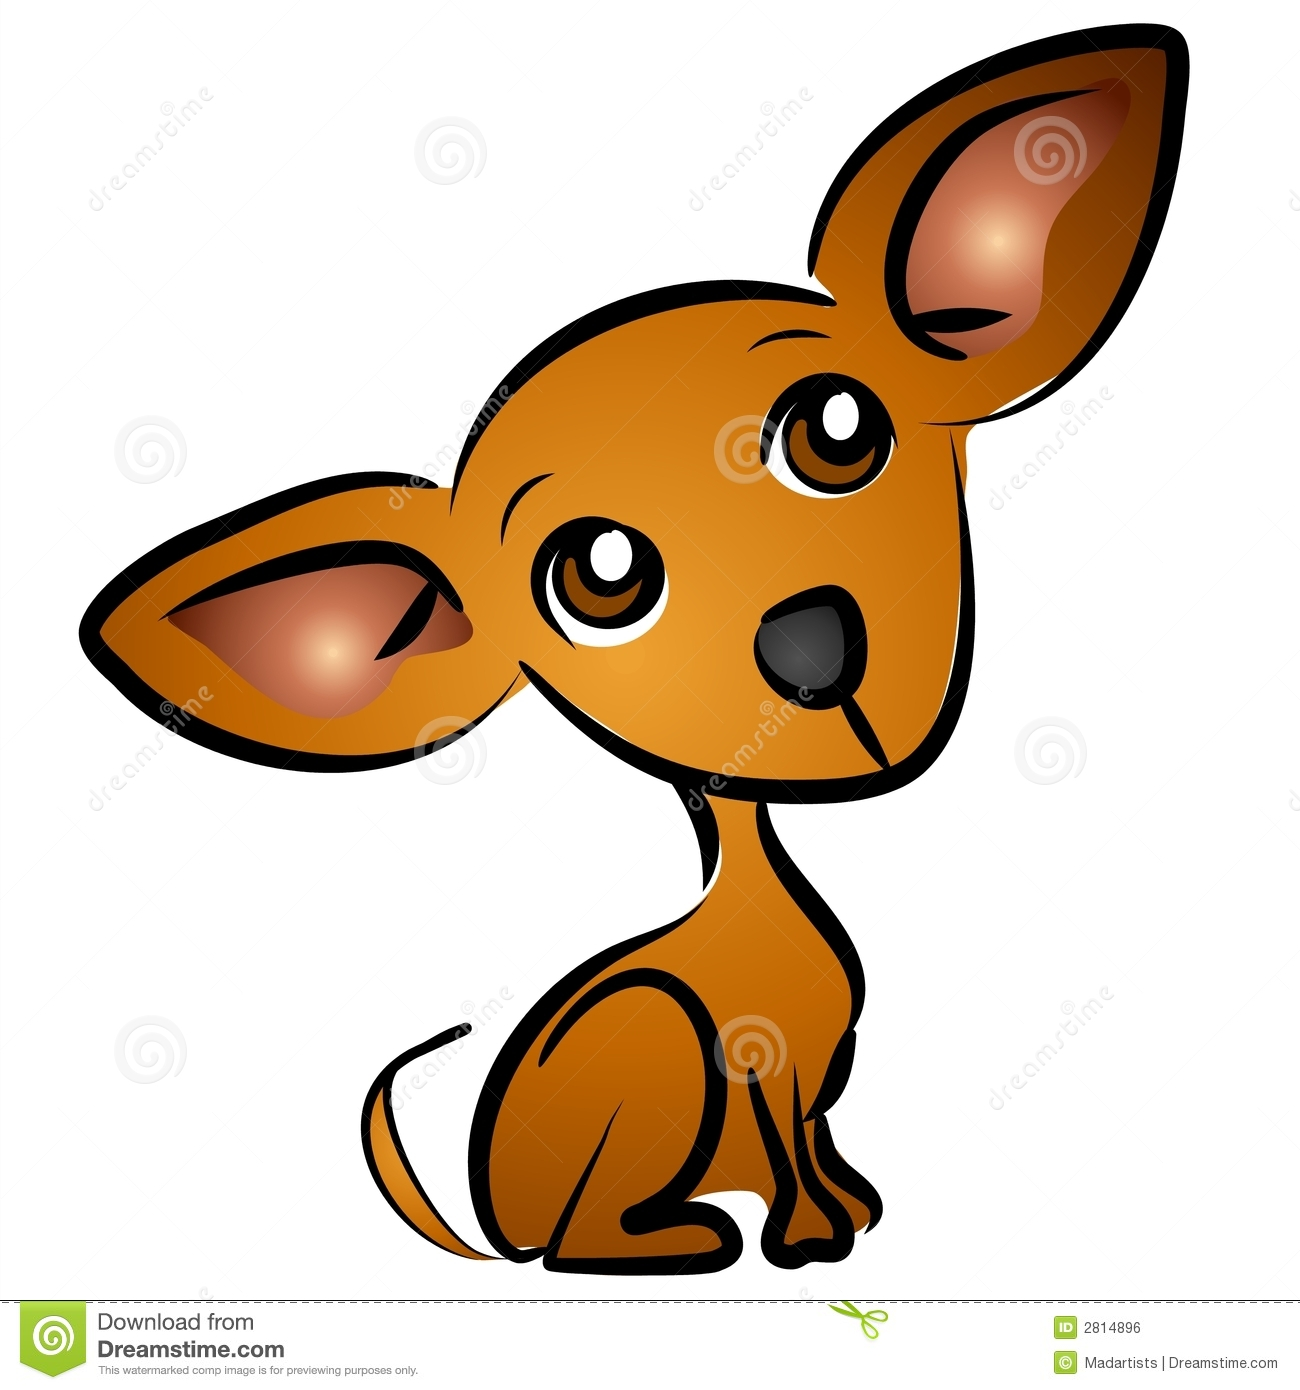 Chihuahua clipart #4, Download drawings